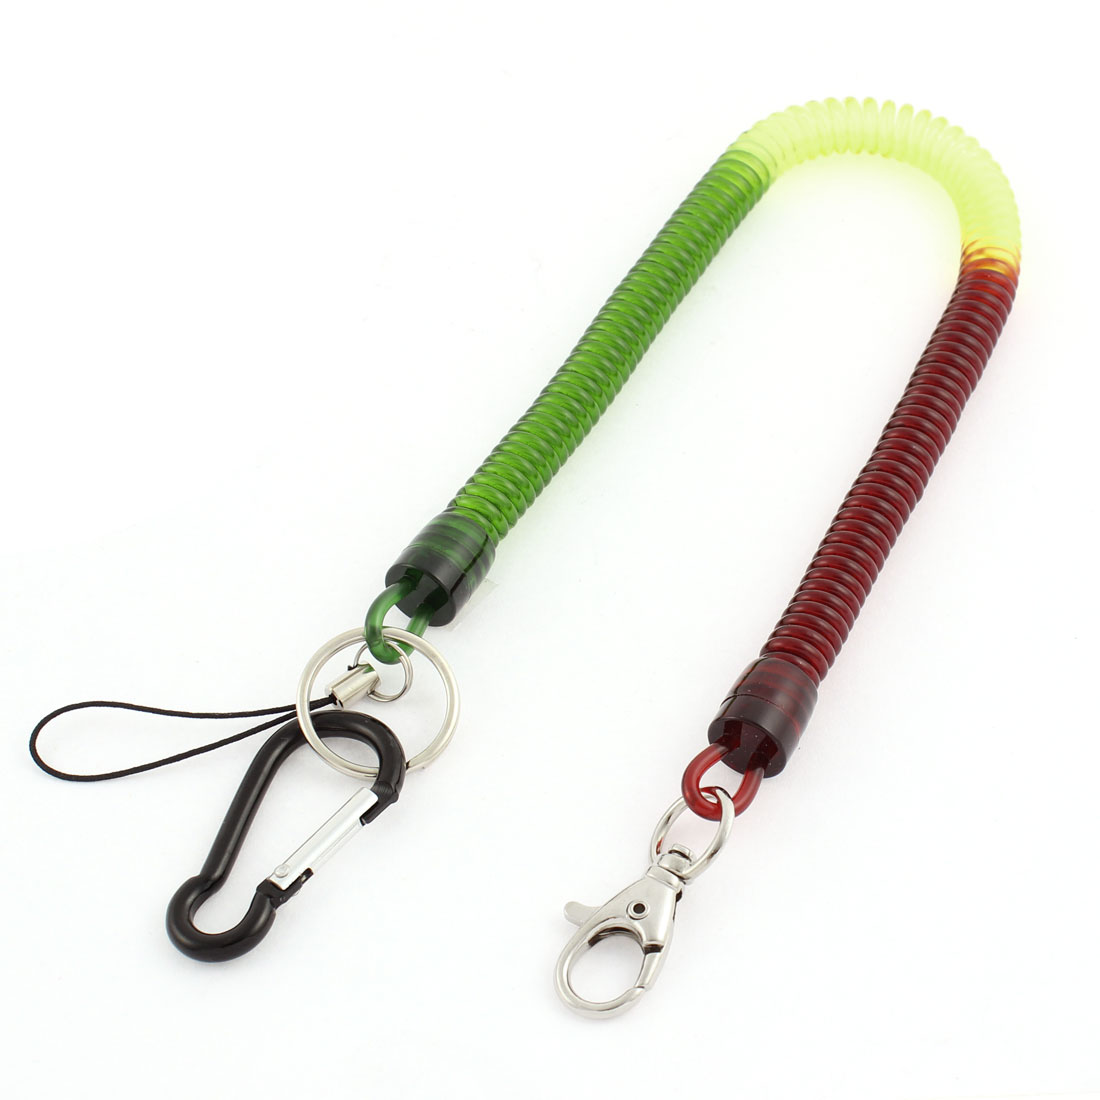 Carabiner Hook Spring Stretchy Coil Key Chain Strap w Lobster Clasp